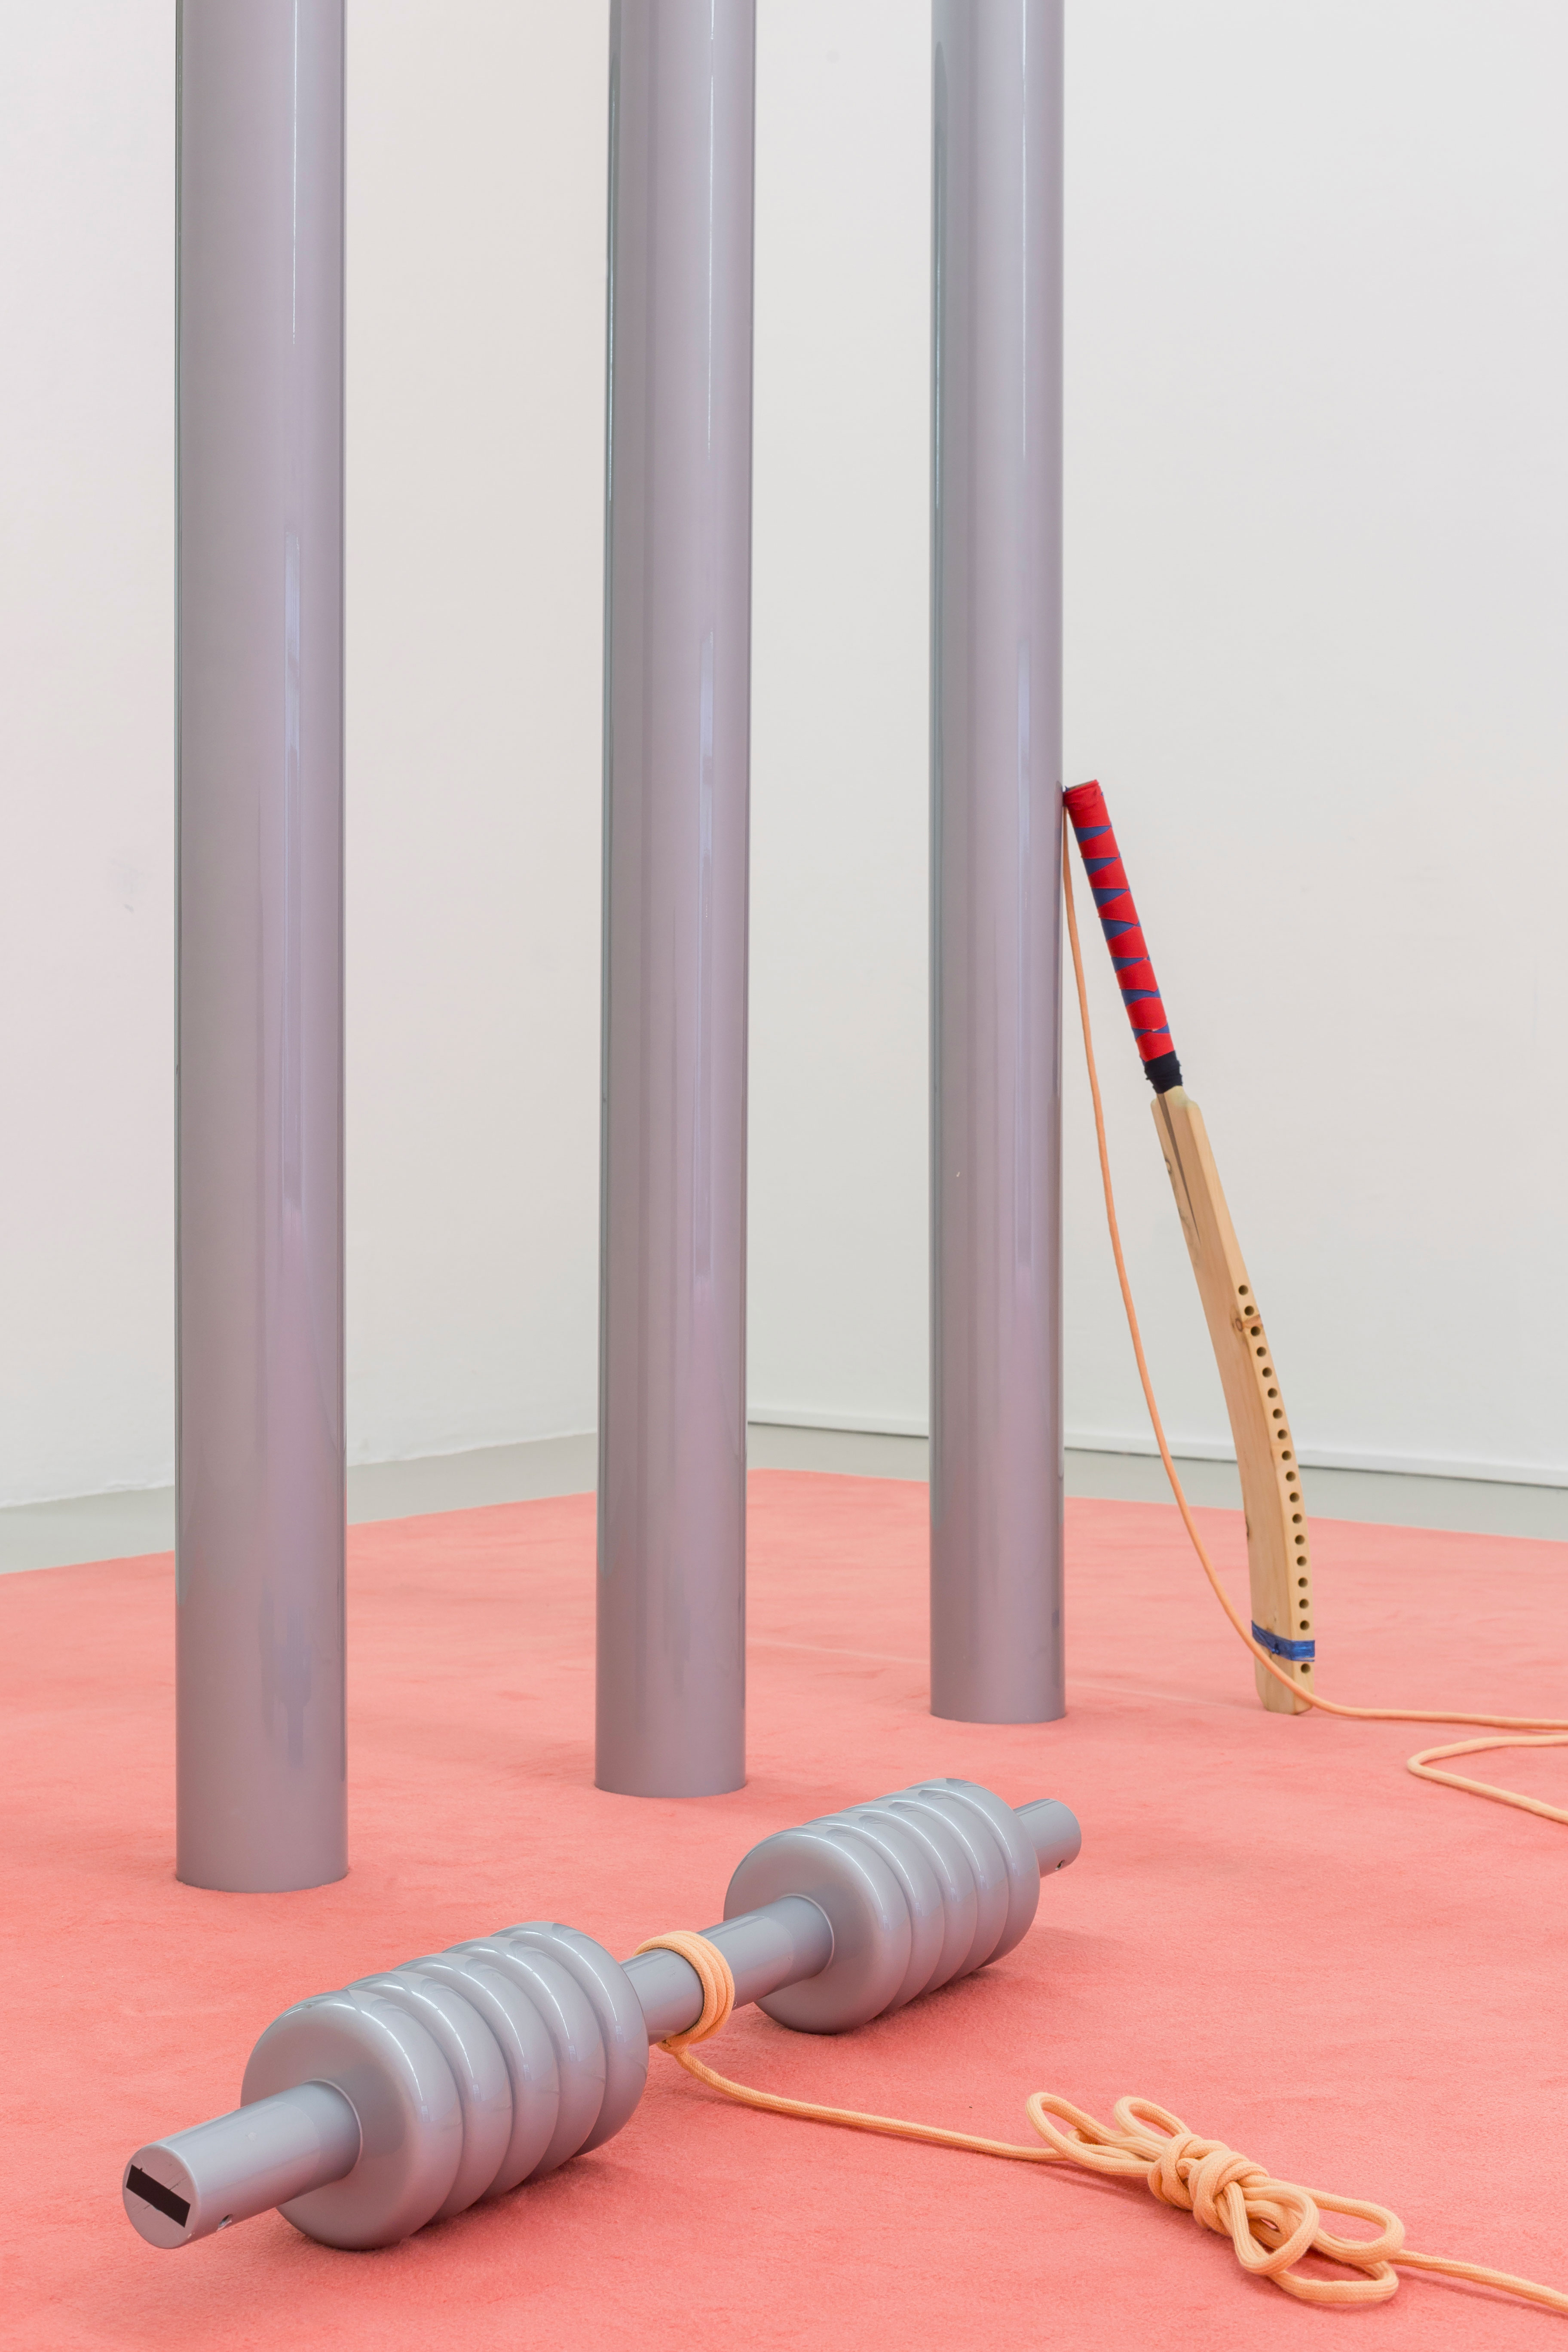 Matilde Cassani, It's just not cricket, Installation view. ©ar/ge kunst, Foto Luca Guadagnini, 2018